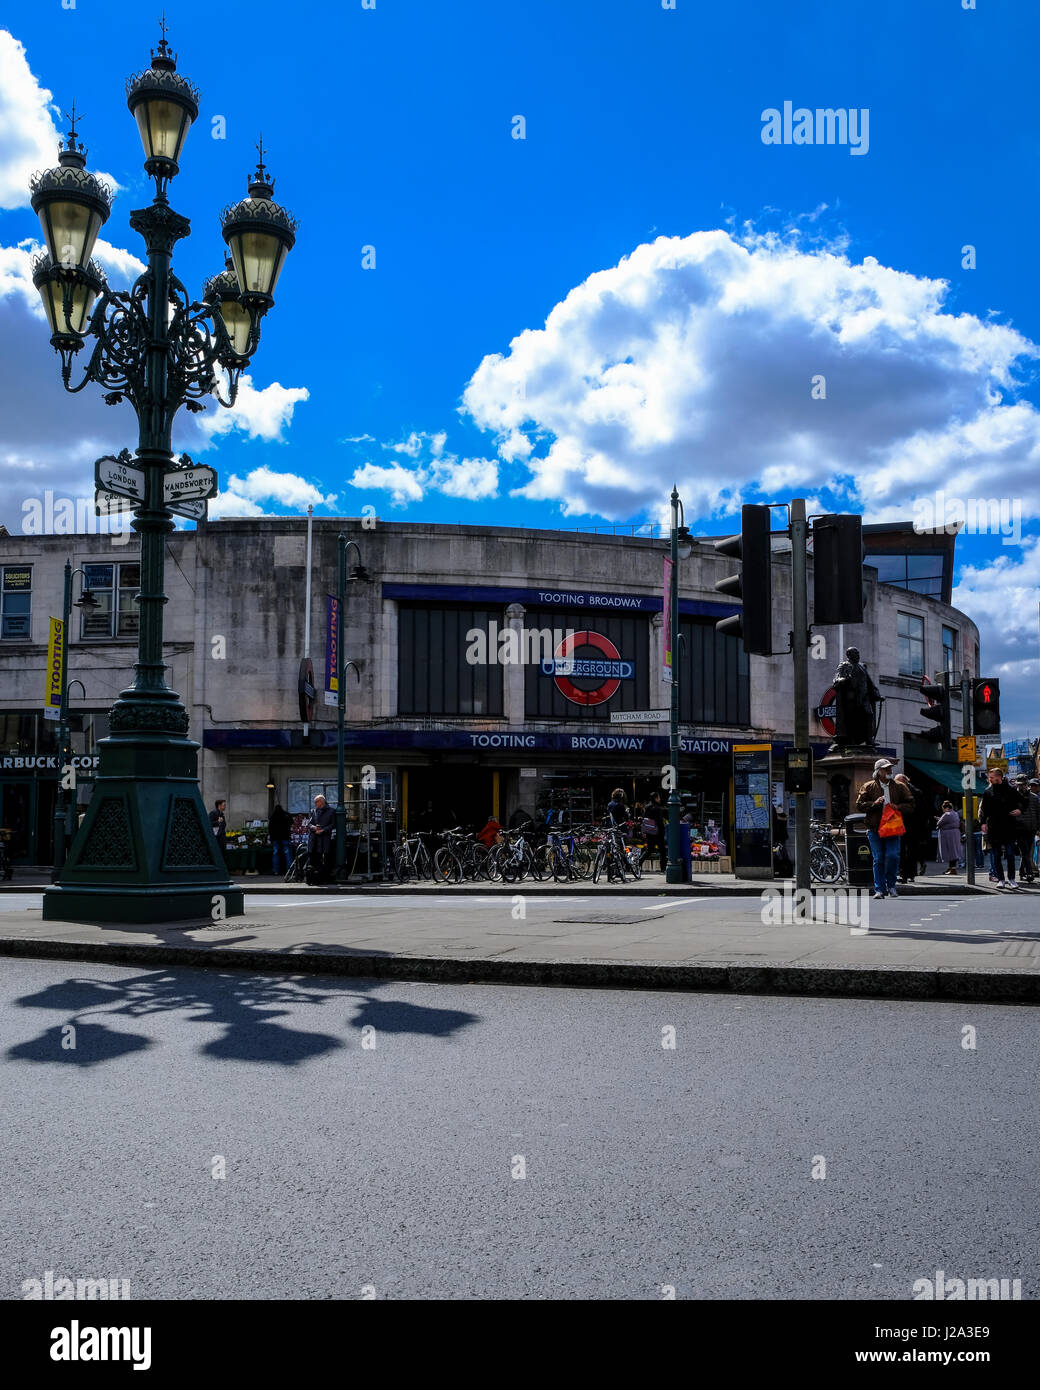 Tooting Broadway station - Stock Image